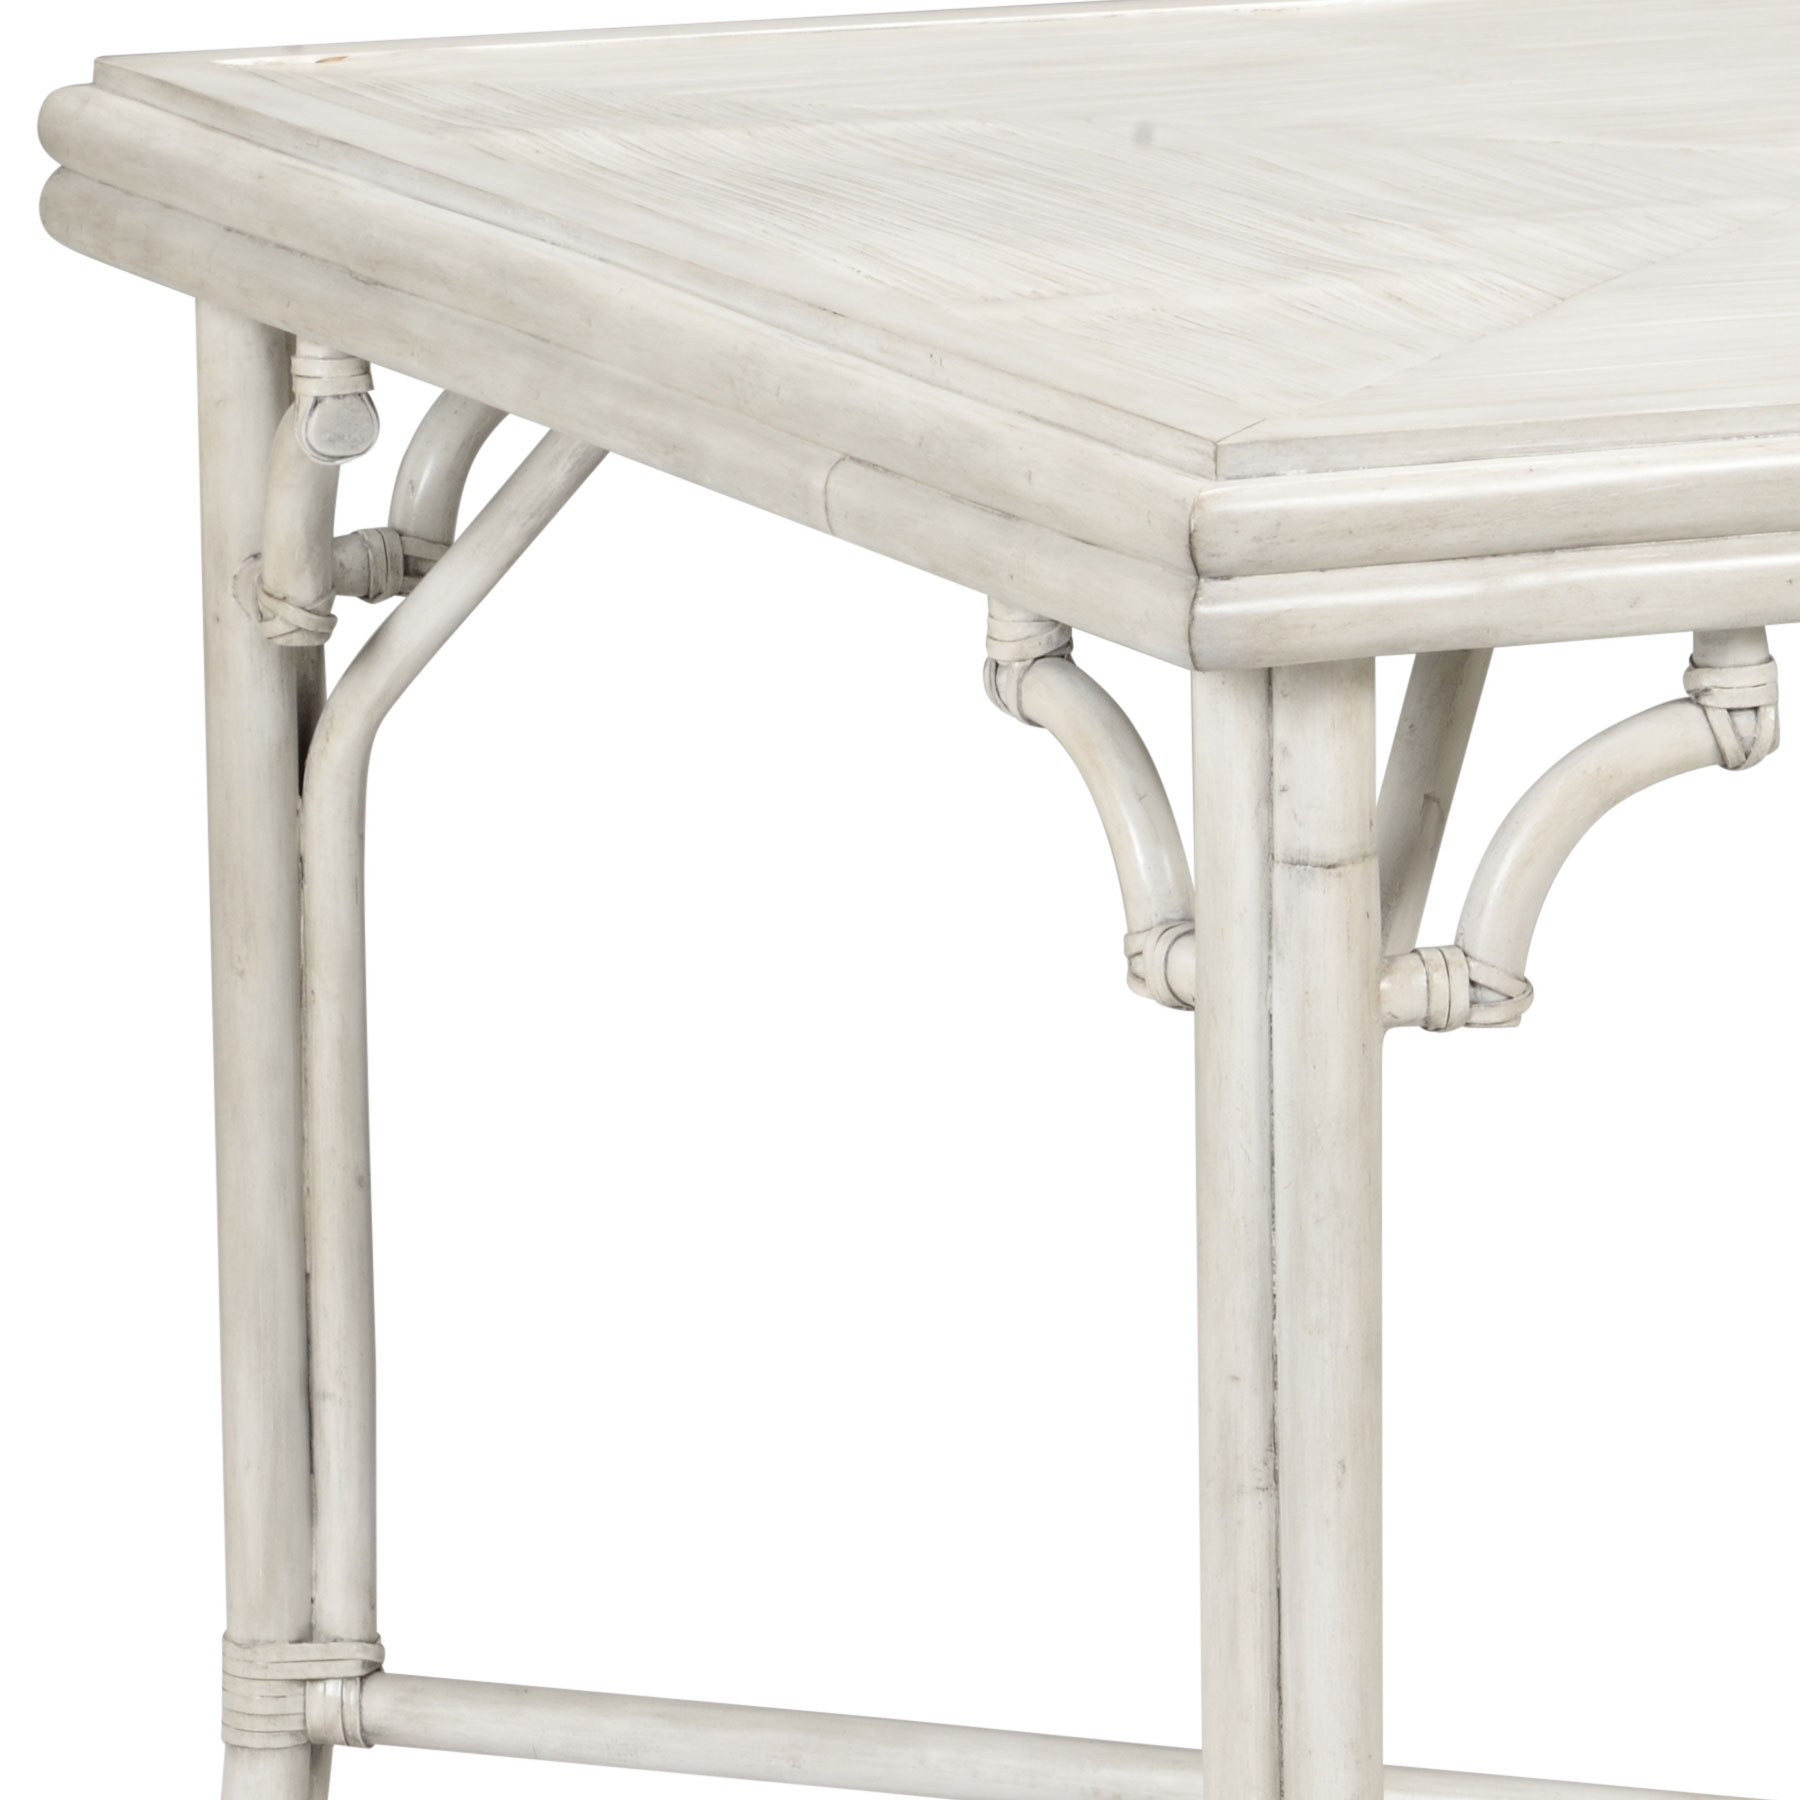 game table accent whitewashed gray bamboo and rattan duke pottery barn metal carpet transition strip threshold couch end furniture small night lamps corner cabinet sauder mission